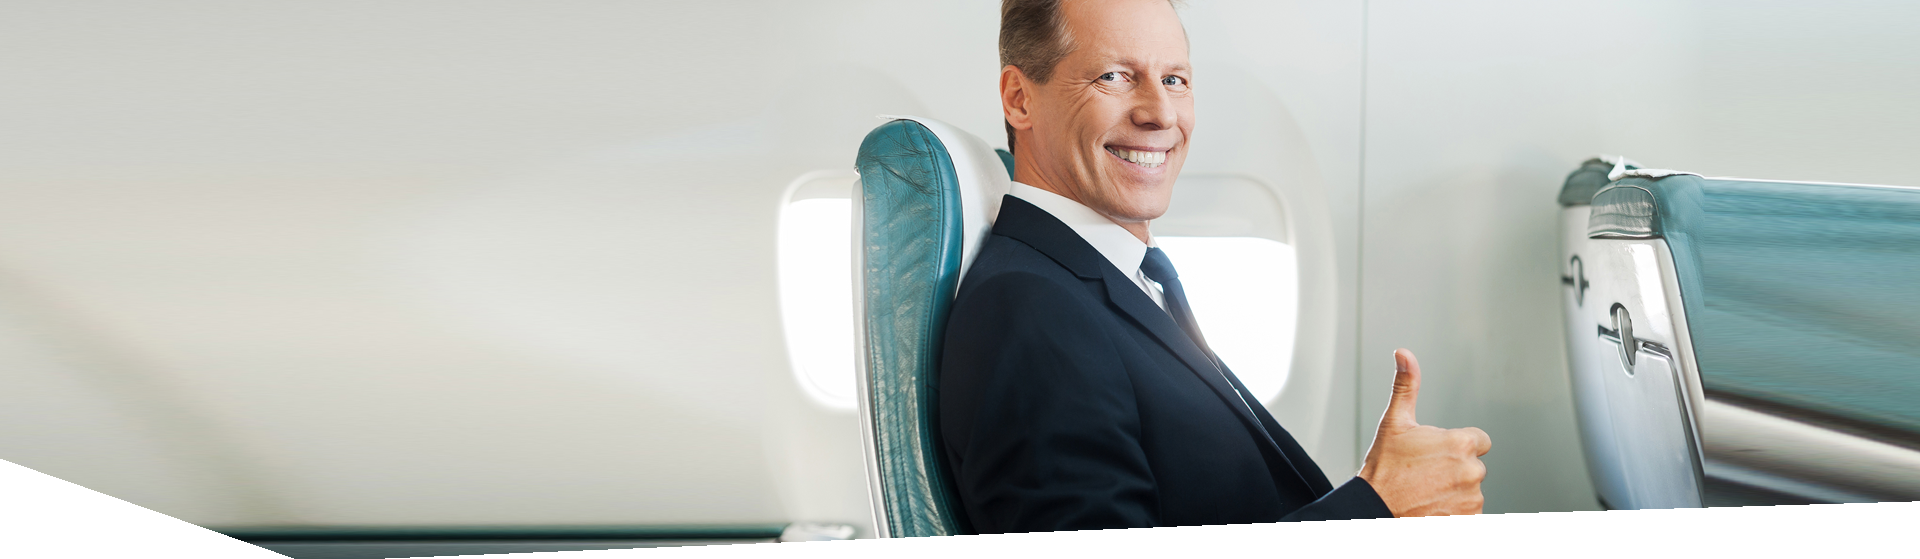 Delivering Emotionally Empathetic Customer Experiences and Higher Overall Revenue for a Leading US Airline